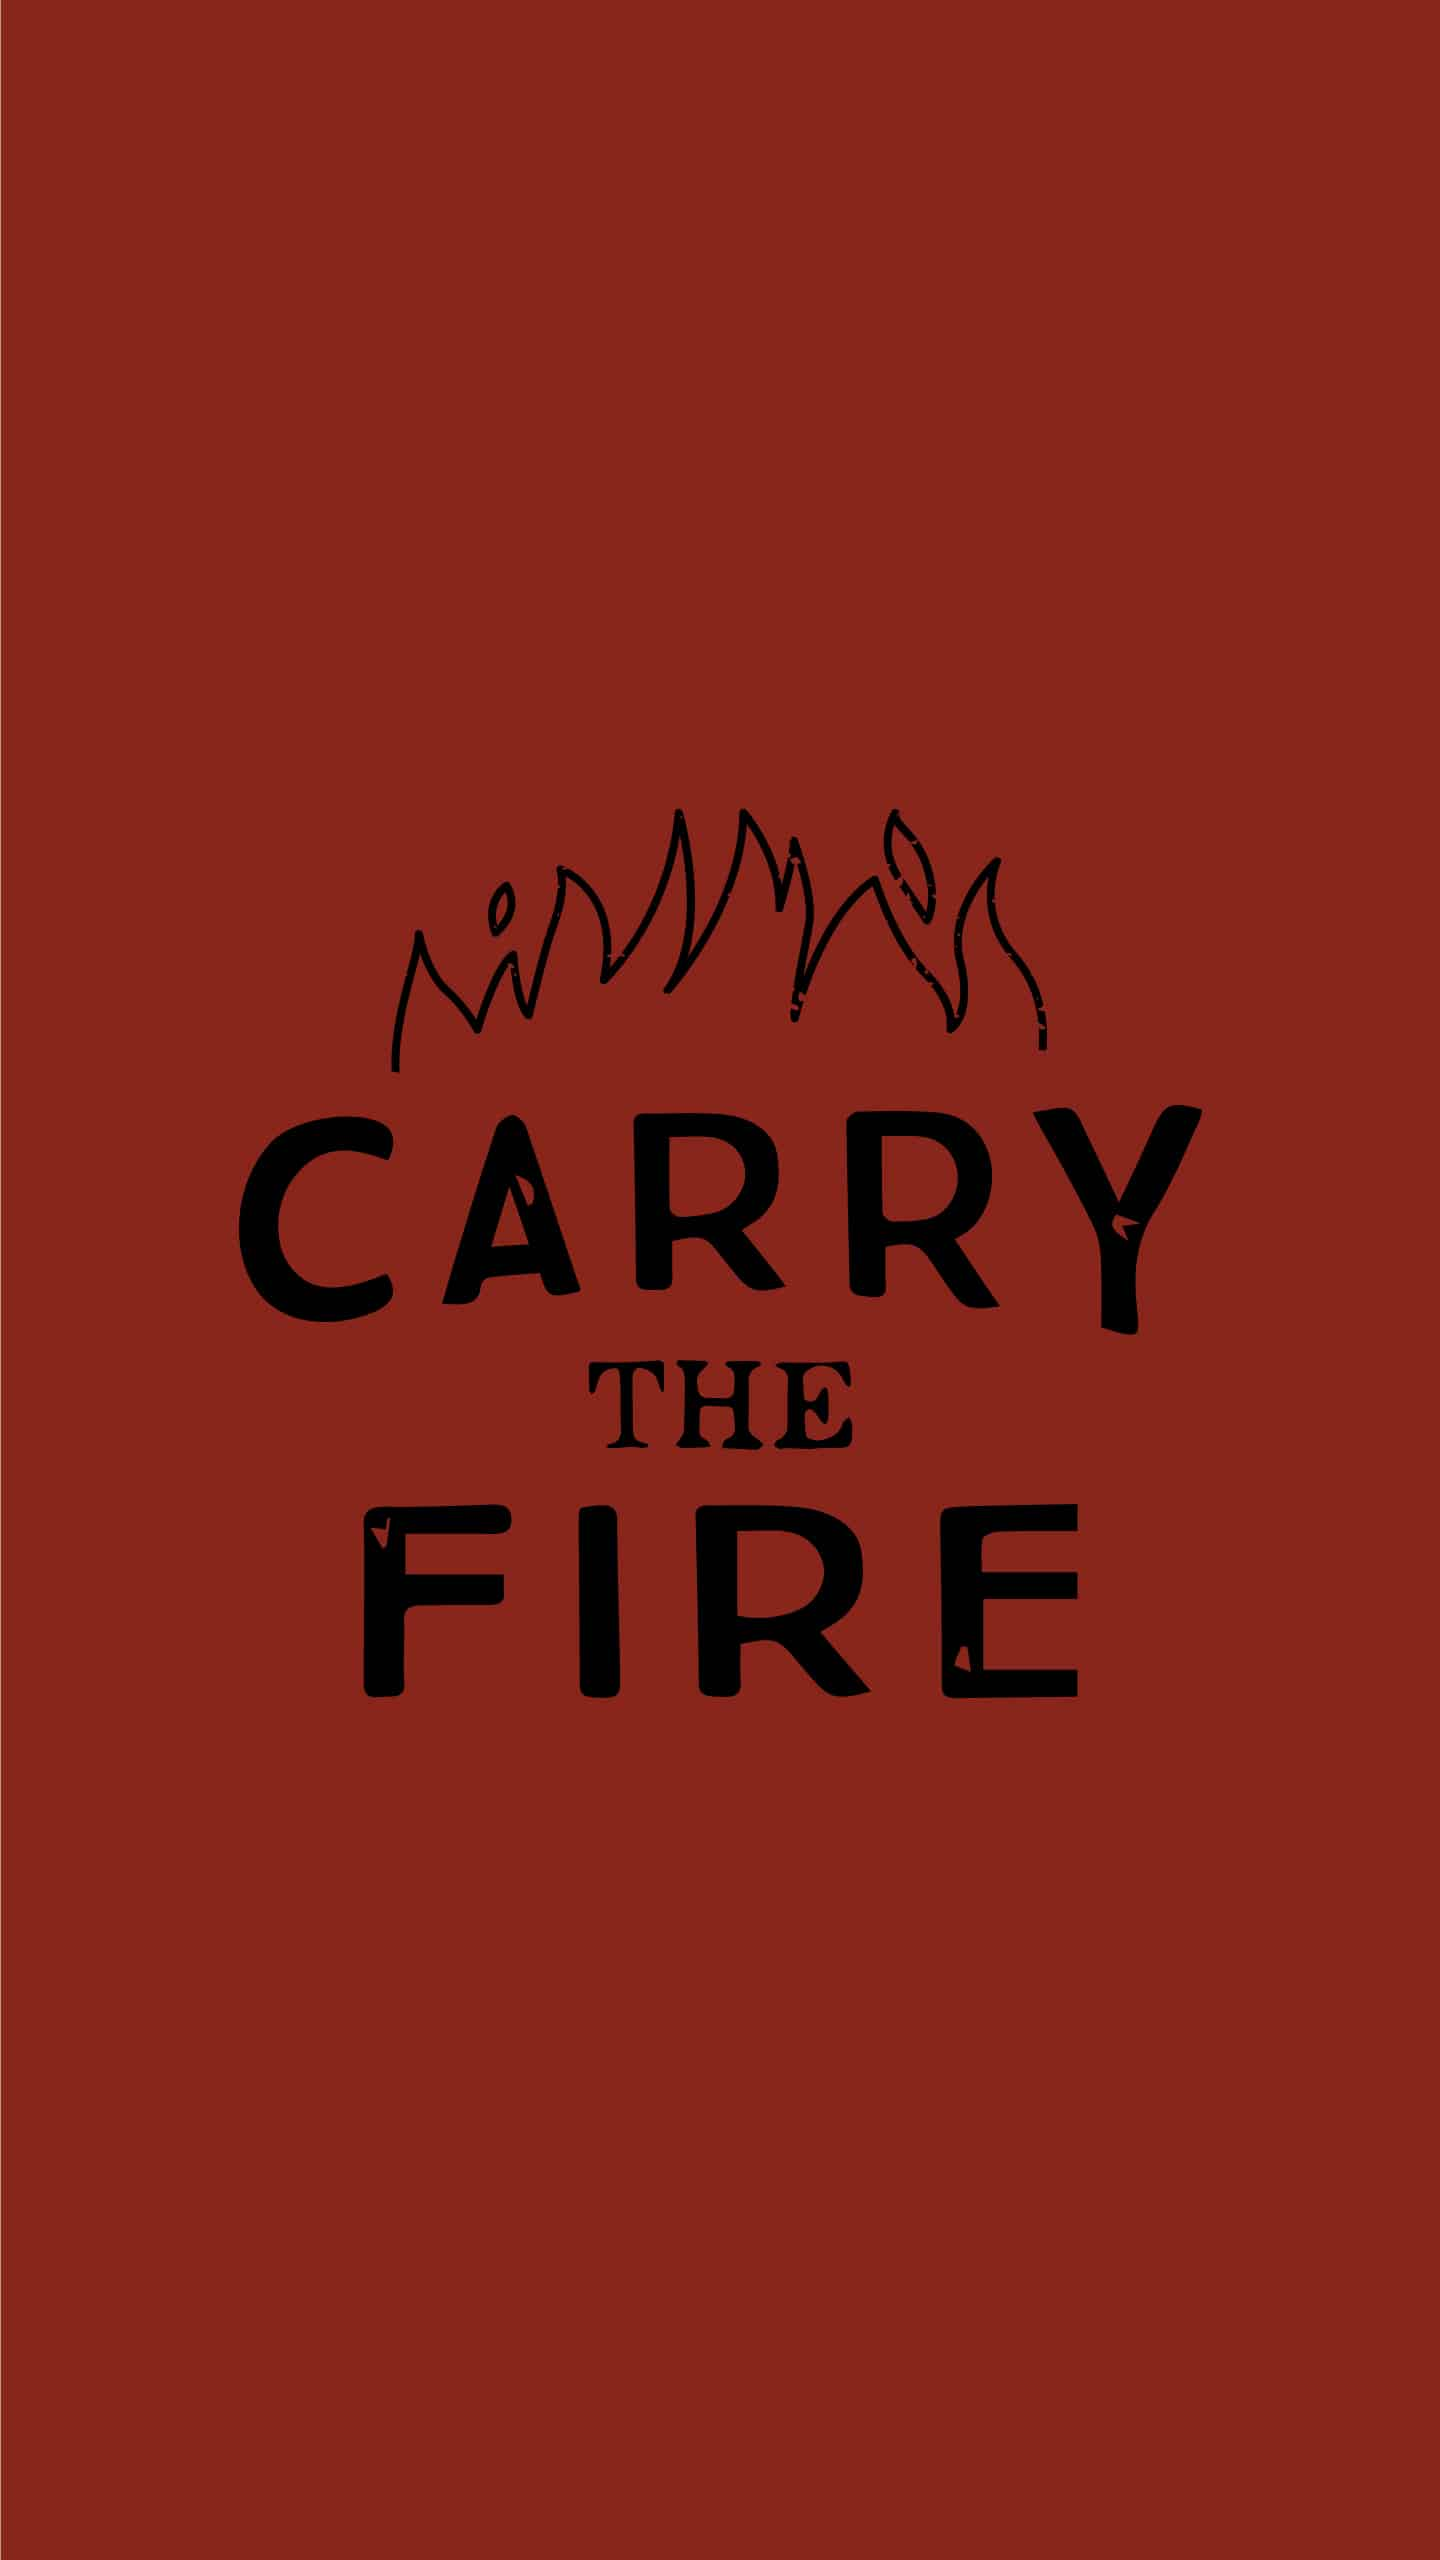 carry-the-fire-wallpaper-2